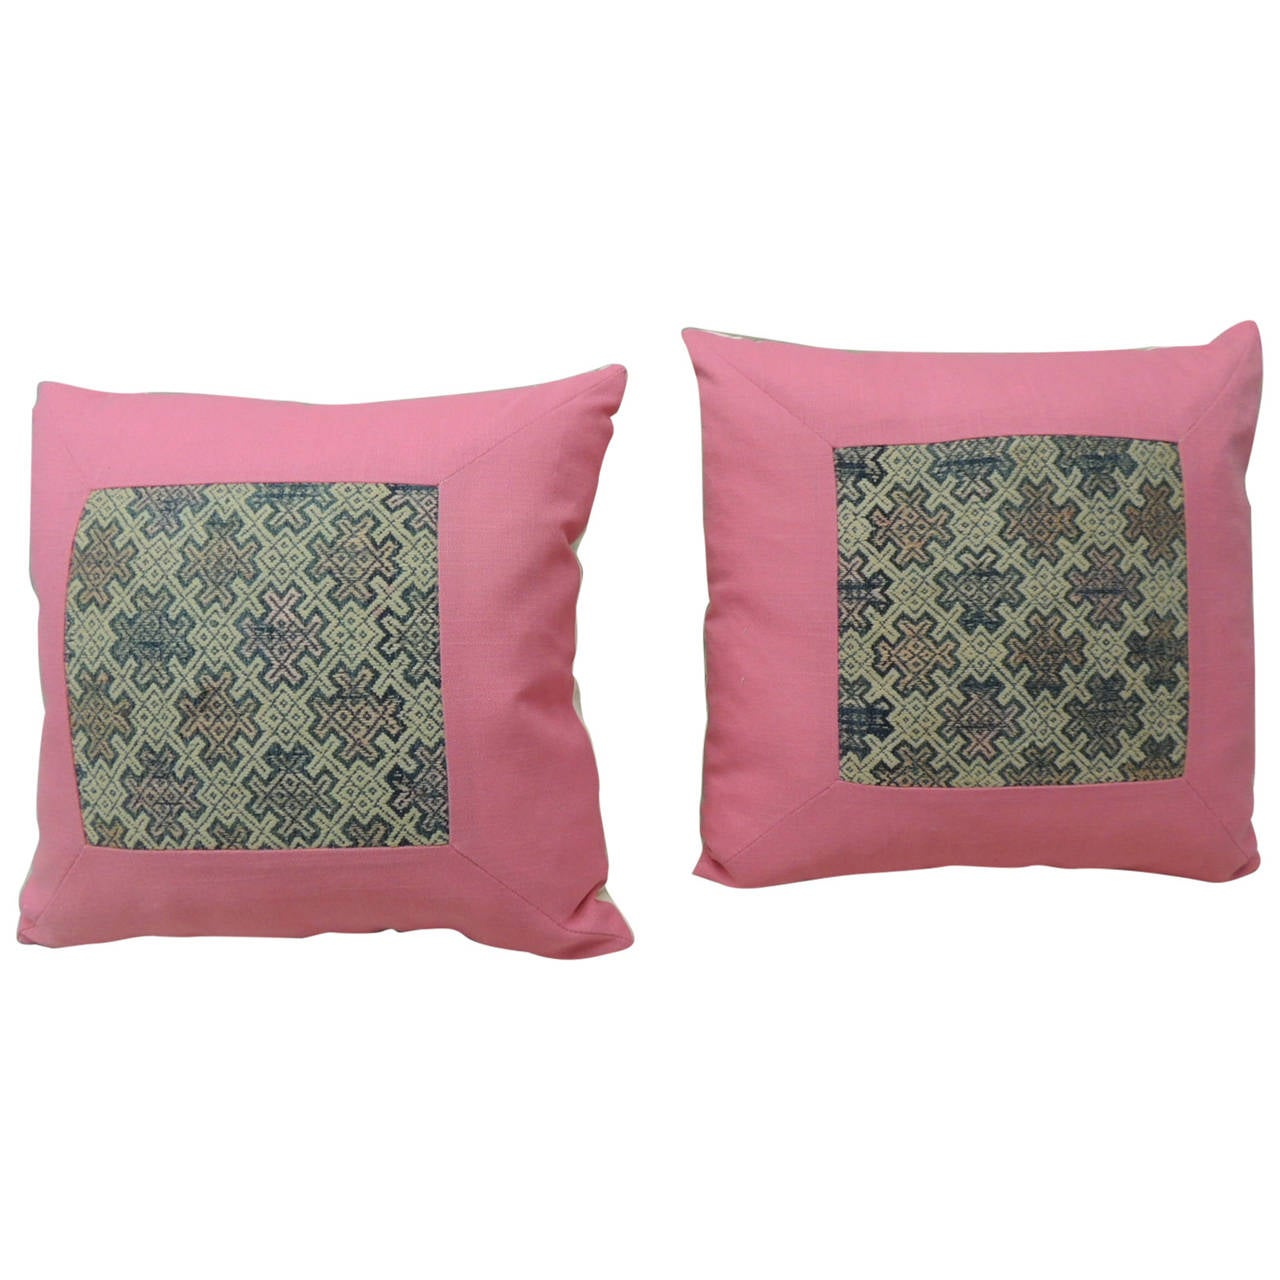 Blue And Pink Decorative Pillows : Vintage Pair of Pink and Blue Woven Linen Chinese Miao Decorative Pillows at 1stdibs